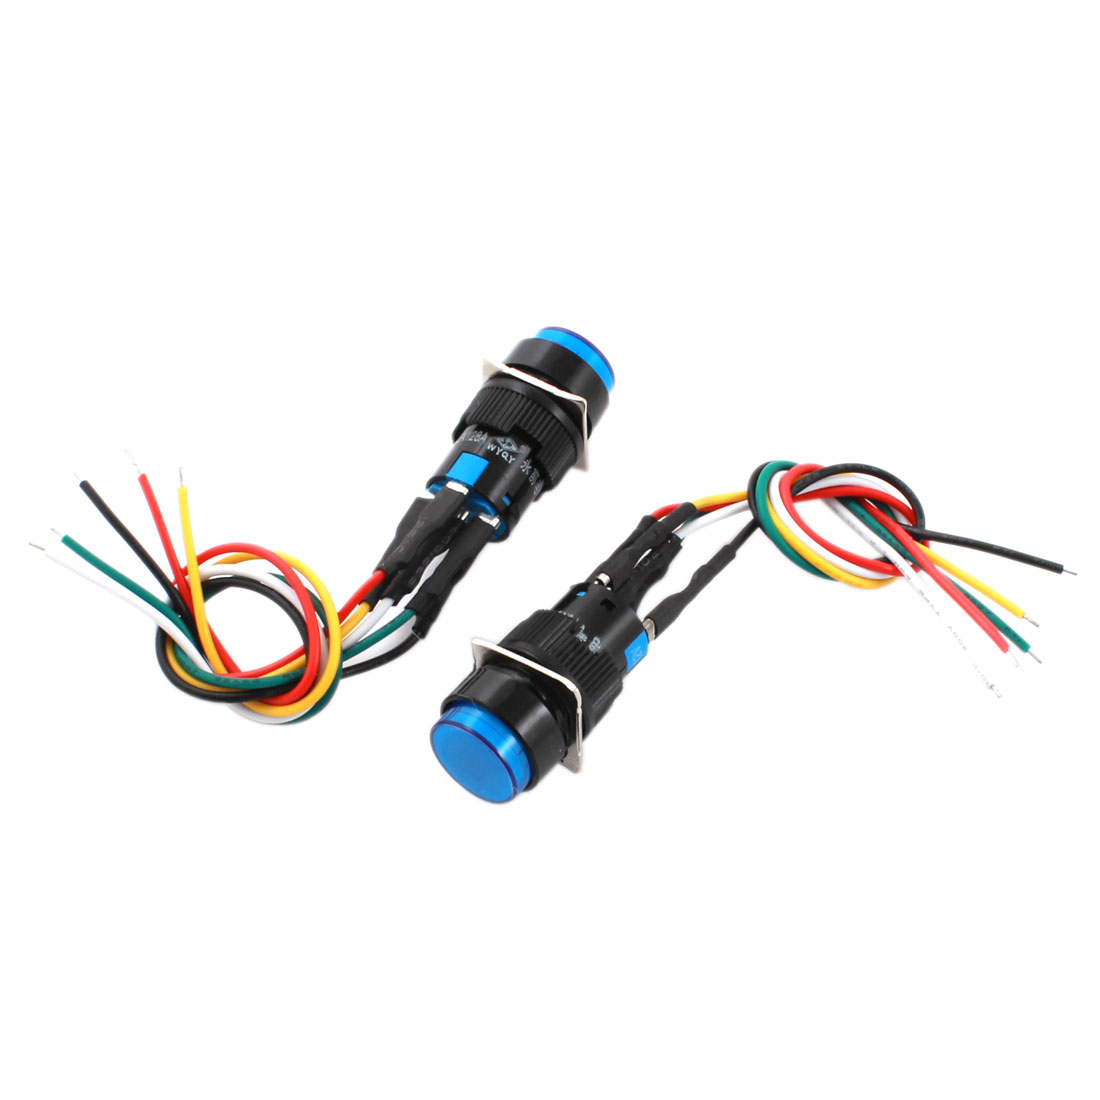 2Pcs DC 12V 16mm Thread Panel Mount SPDT 1NO 1NC Locking 5-Wire Blue Lamp Pushbutton Switch